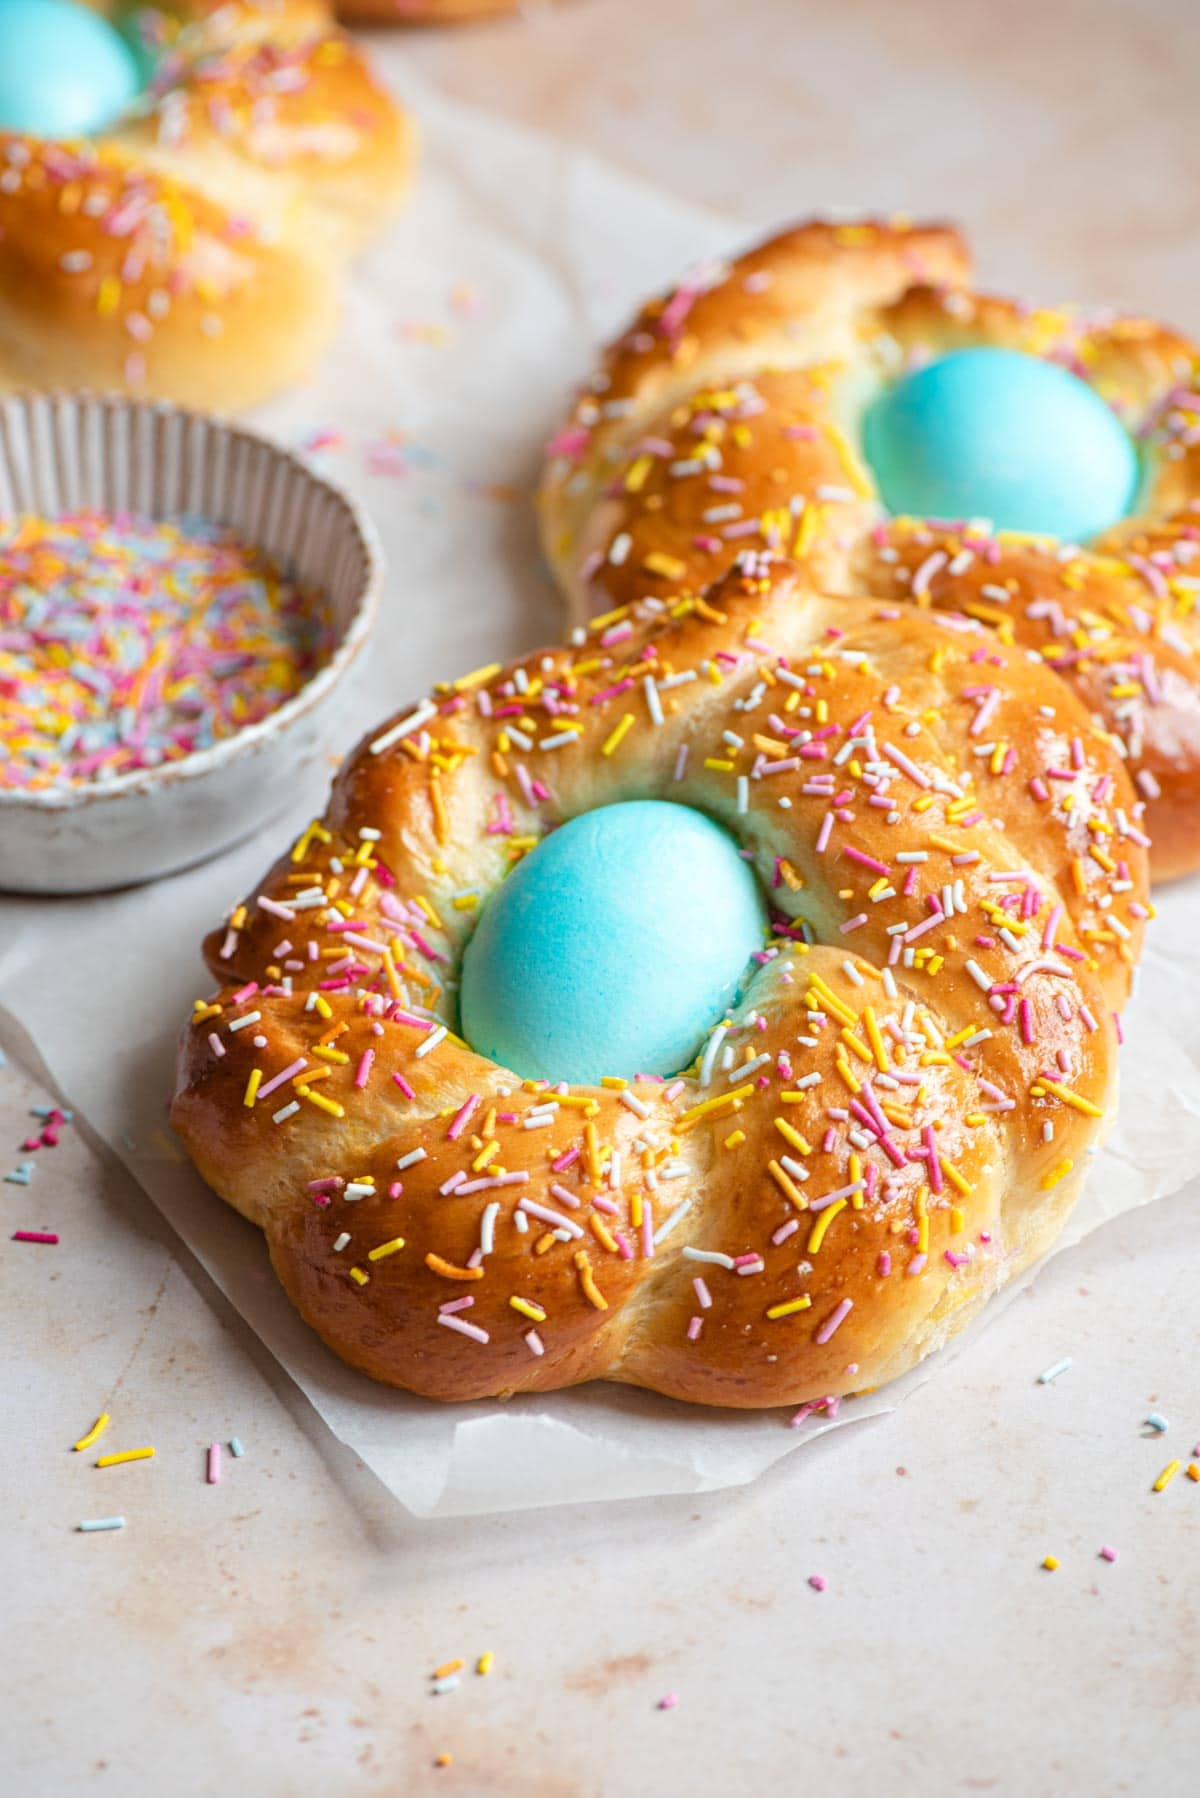 Italian Easter bread with a blue egg in the middle covered with sprinkles